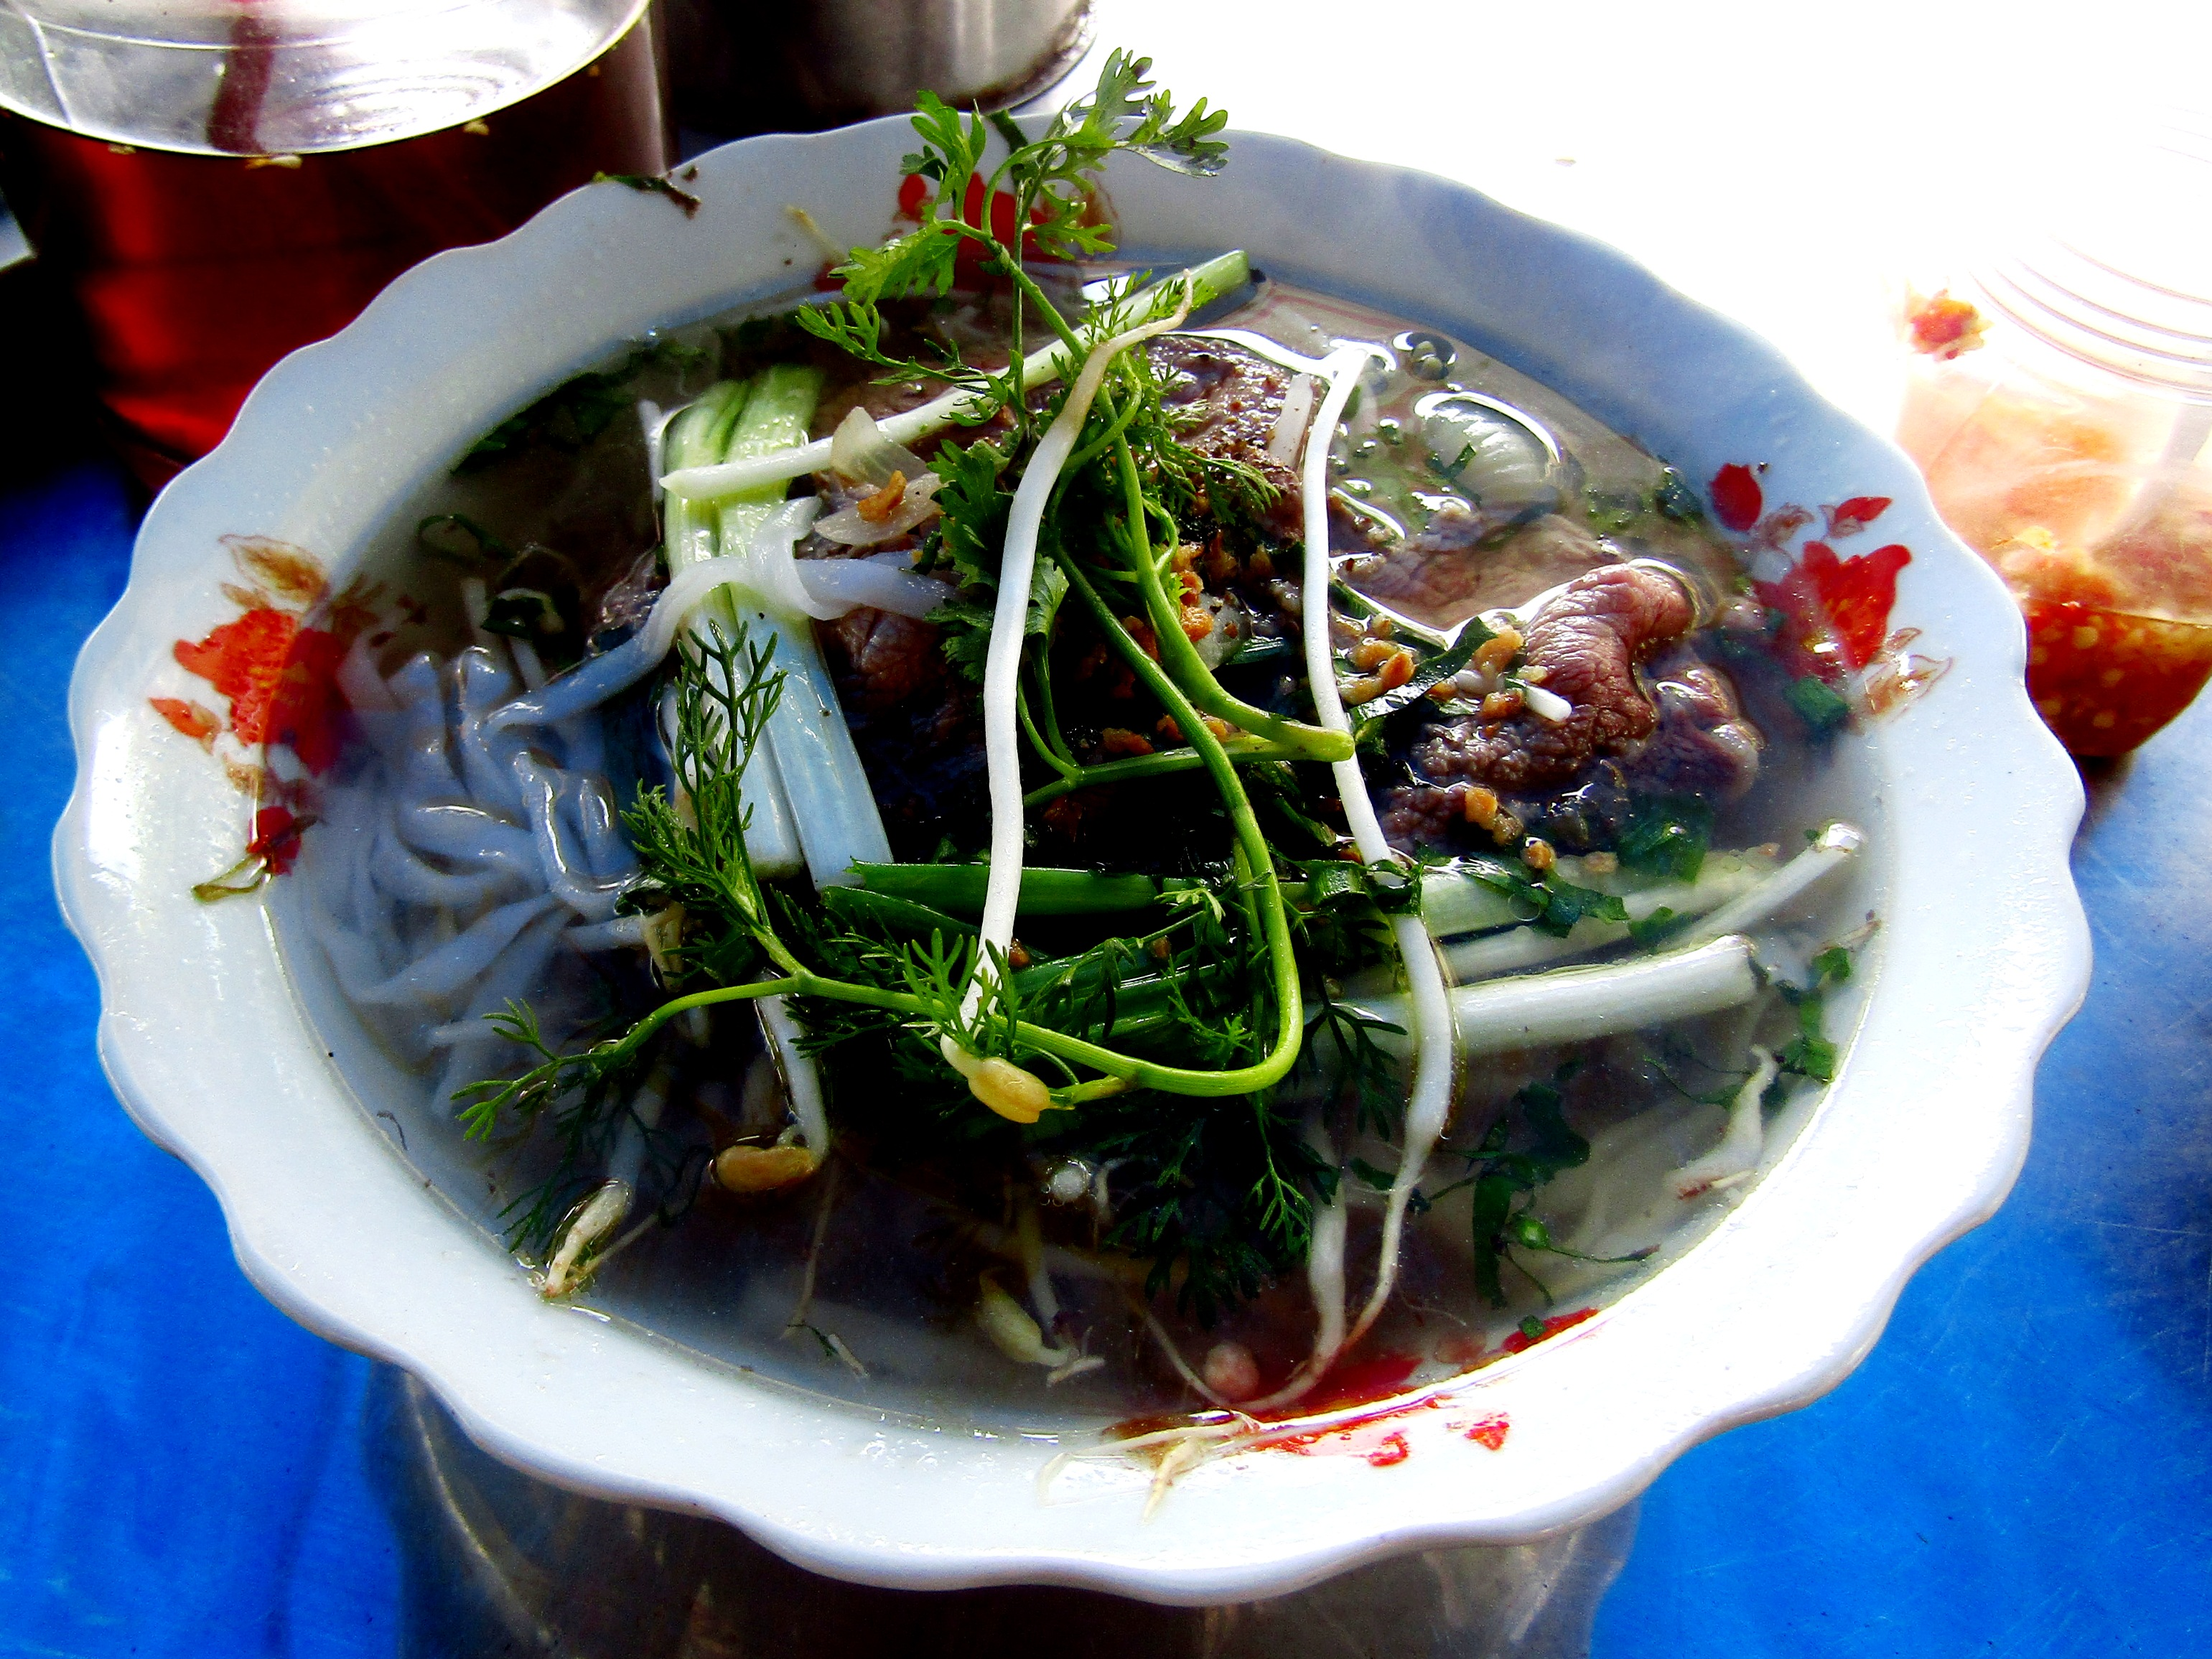 Phở Bo - Beef Noodle Soup